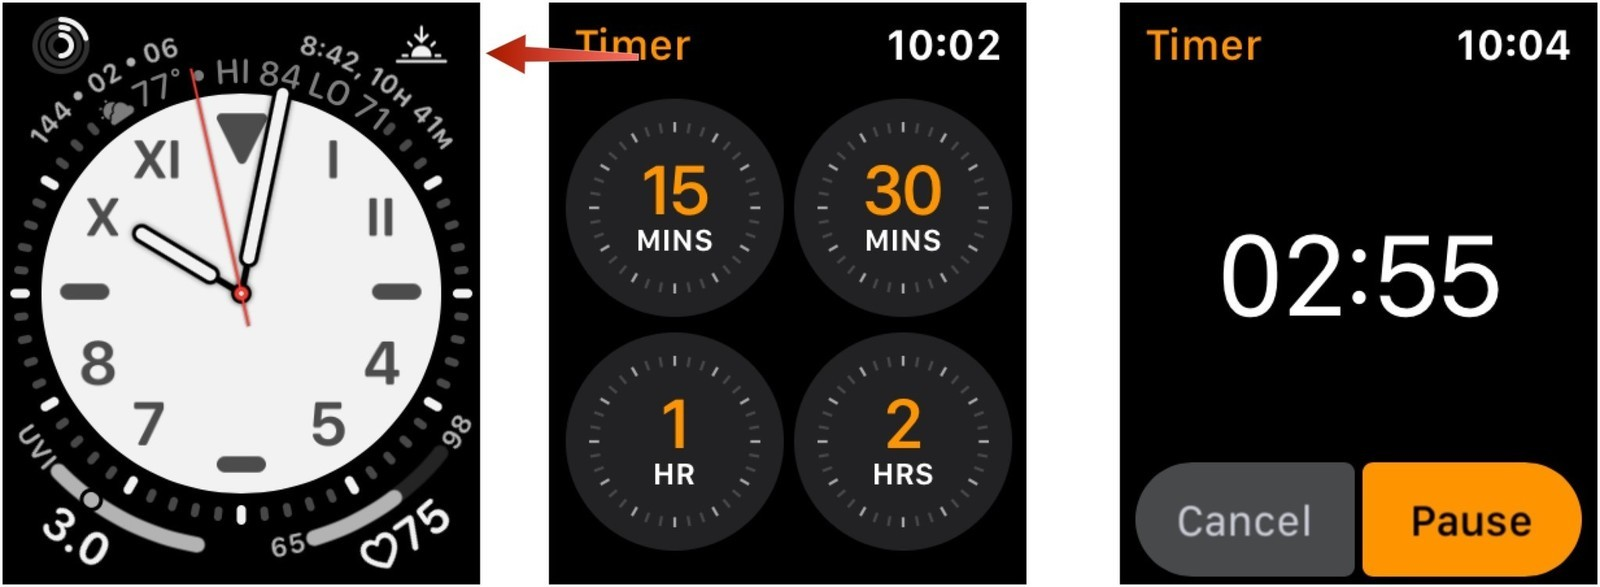 How to set a timer on Apple Watch | iMore